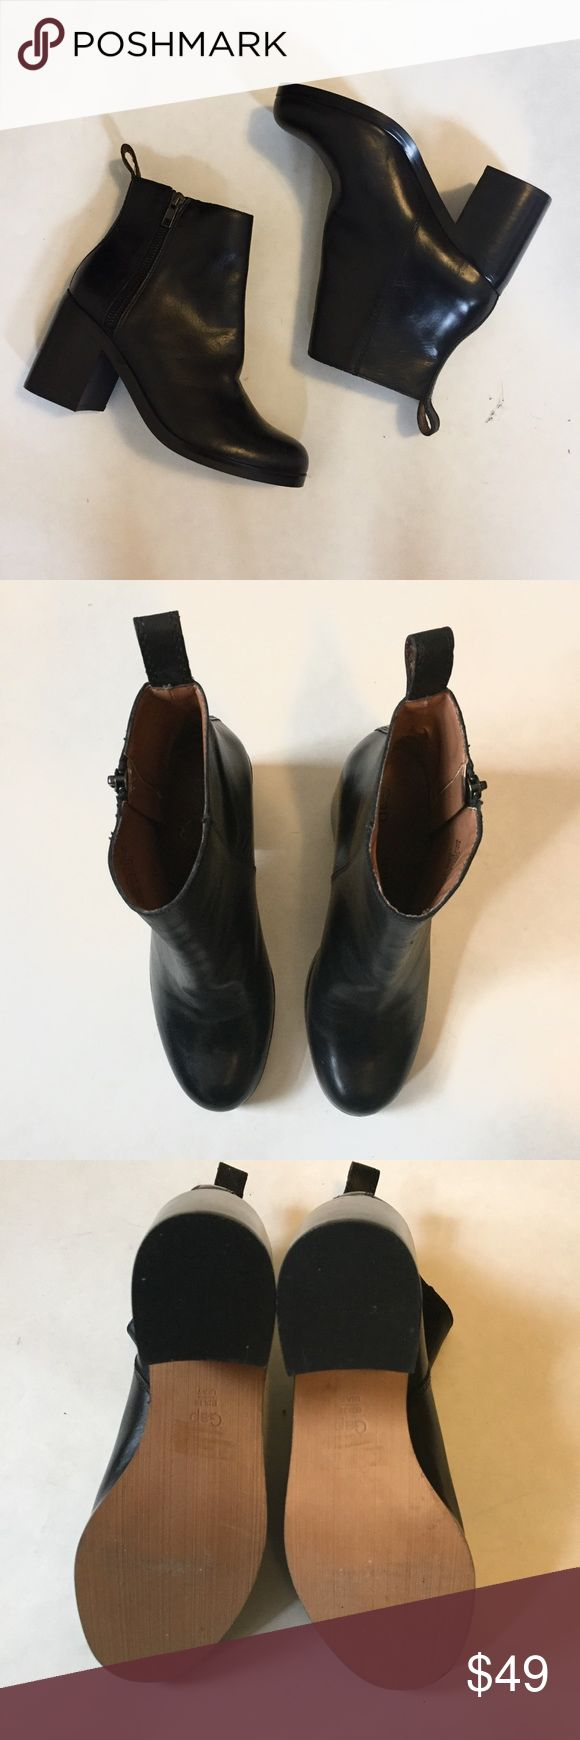 GAP Zip Heeled Ankle Bootie Black Leather 7 GAP zip heeled ankle bootie with rounded toe, side zip, and pull tab at the back. Leather upper with rubber outsole and stacked heel. Size 7. Only worn once so they're in great condition! GAP Shoes Ankle Boots & Booties